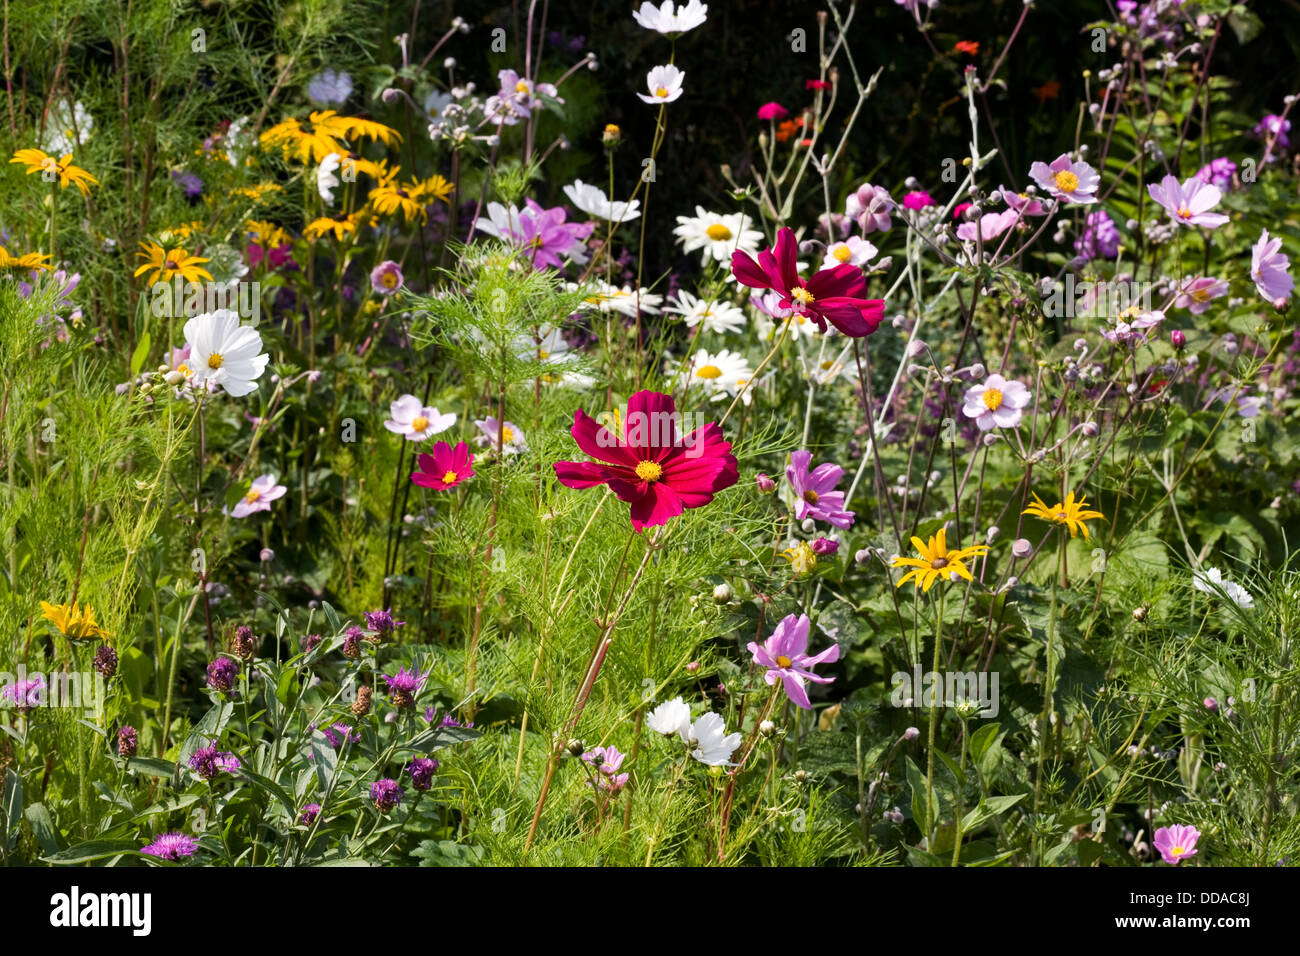 Flowers in an English cottage garden. - Stock Image